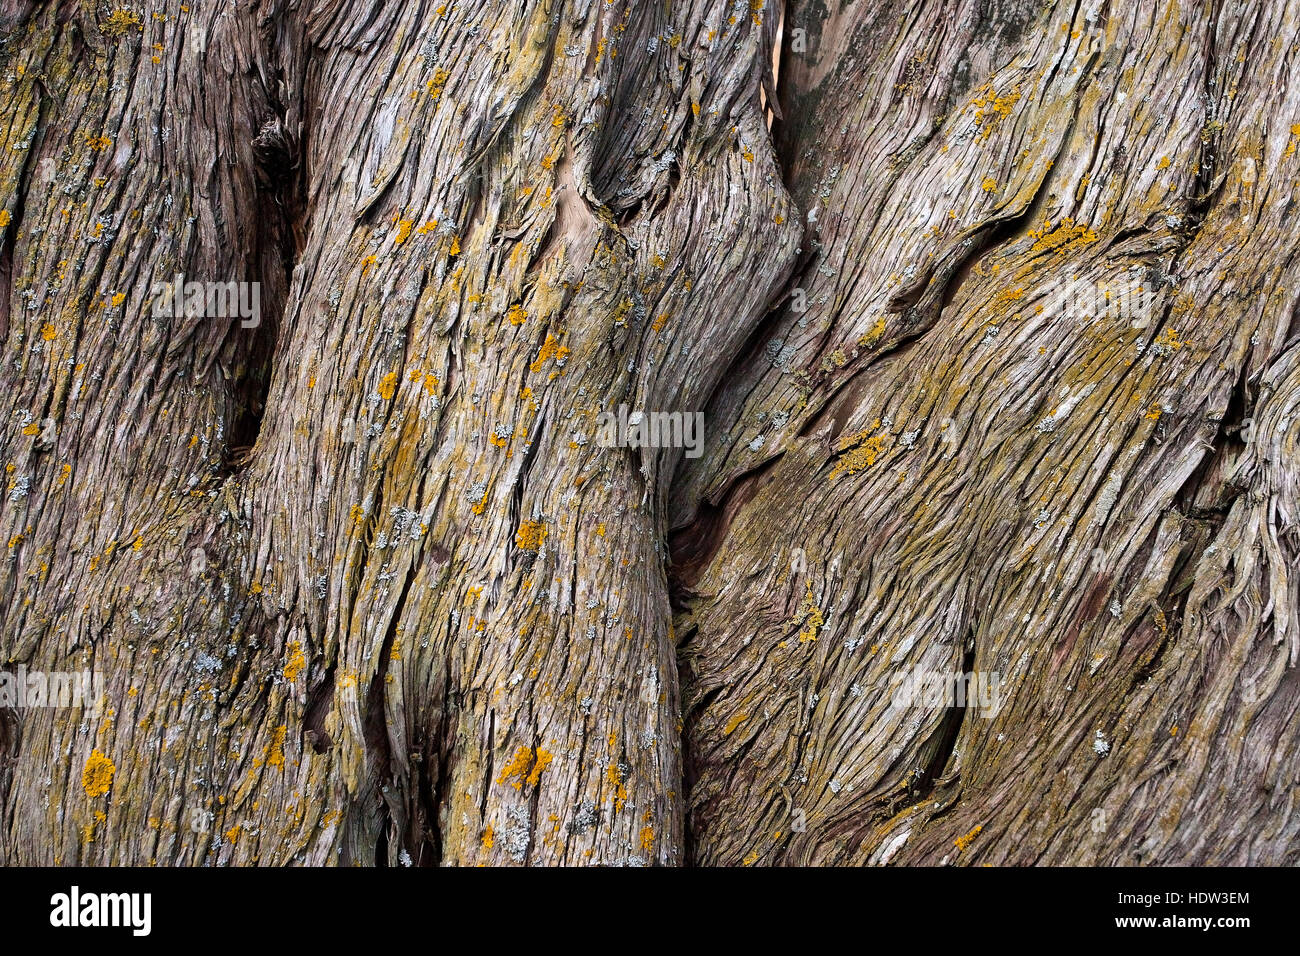 textured tactile tree bark - Stock Image